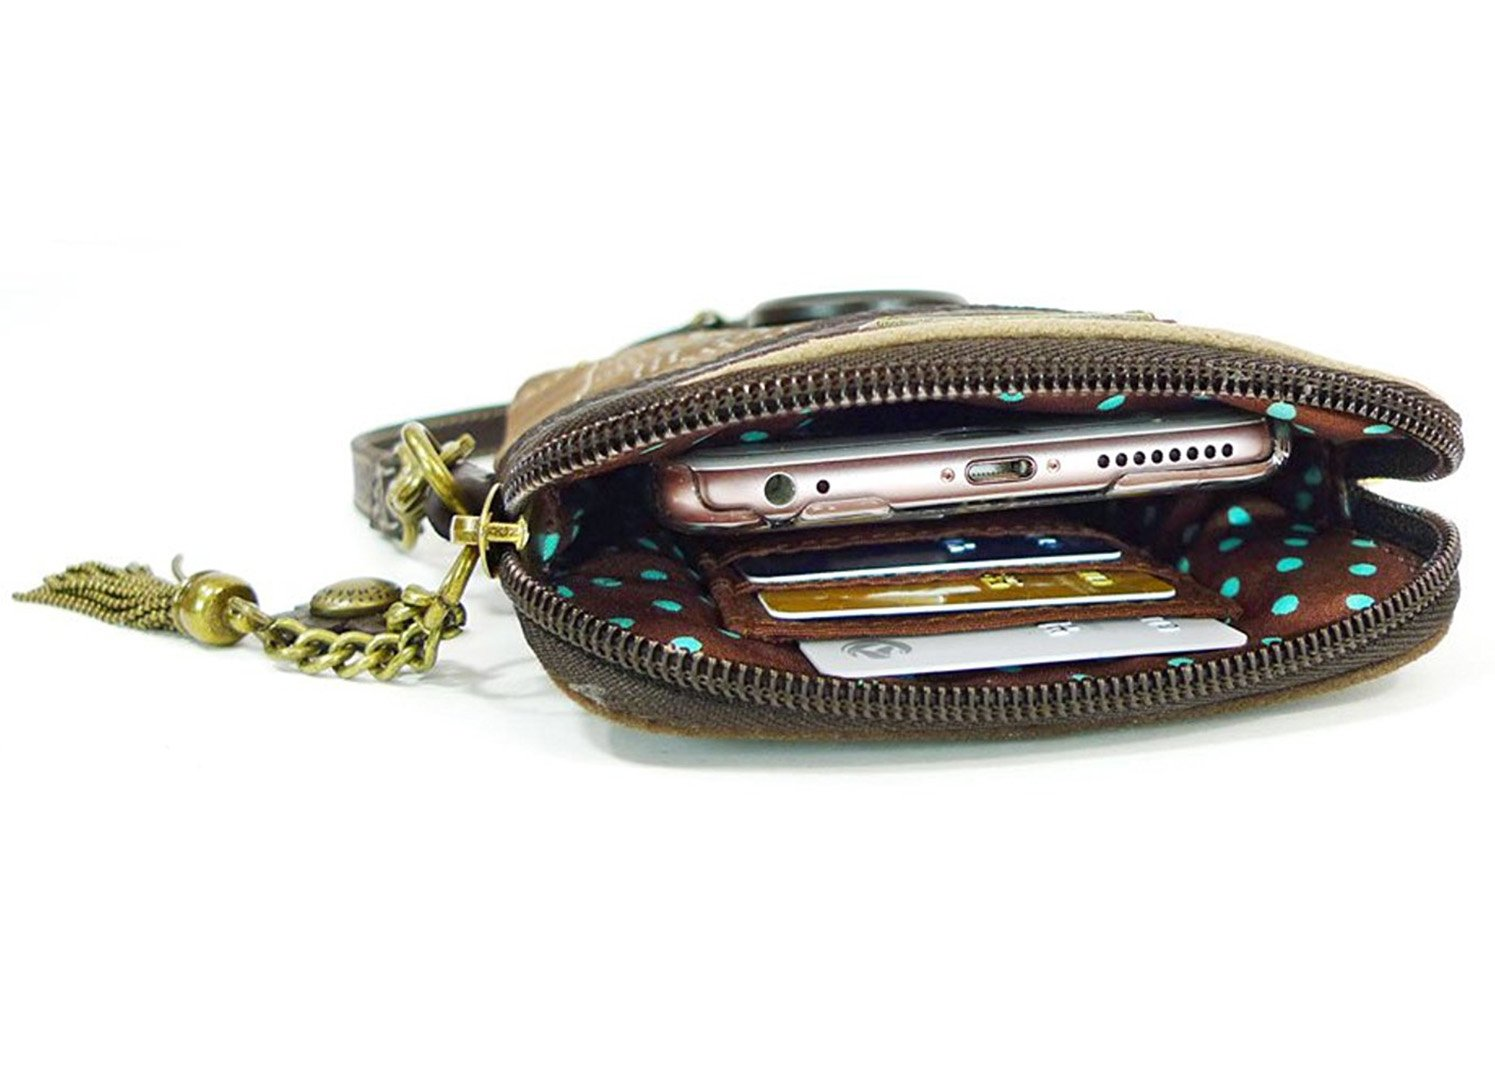 Chala Crossbody Cell Phone Purse - Women PU Leather Multicolor Handbag with Adjustable Strap - Mermaid - Blue by CHALA (Image #3)